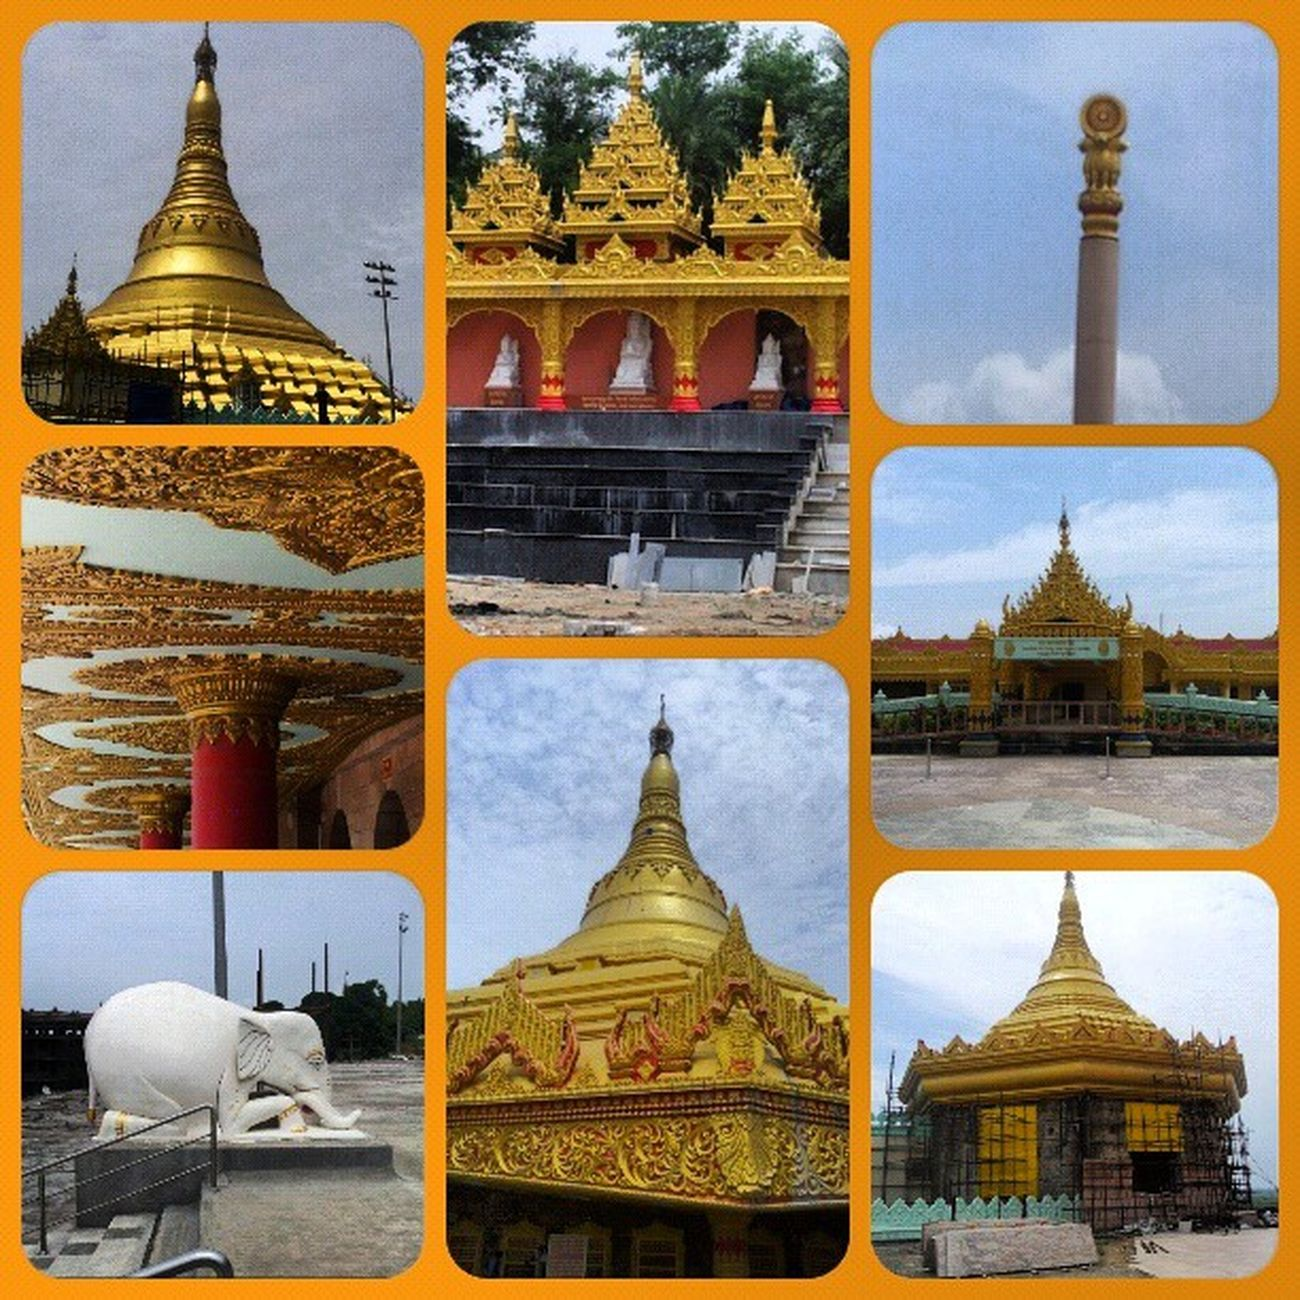 Glimpses of Global Vipassana Pagoda Buddha Gorai Sharnam .